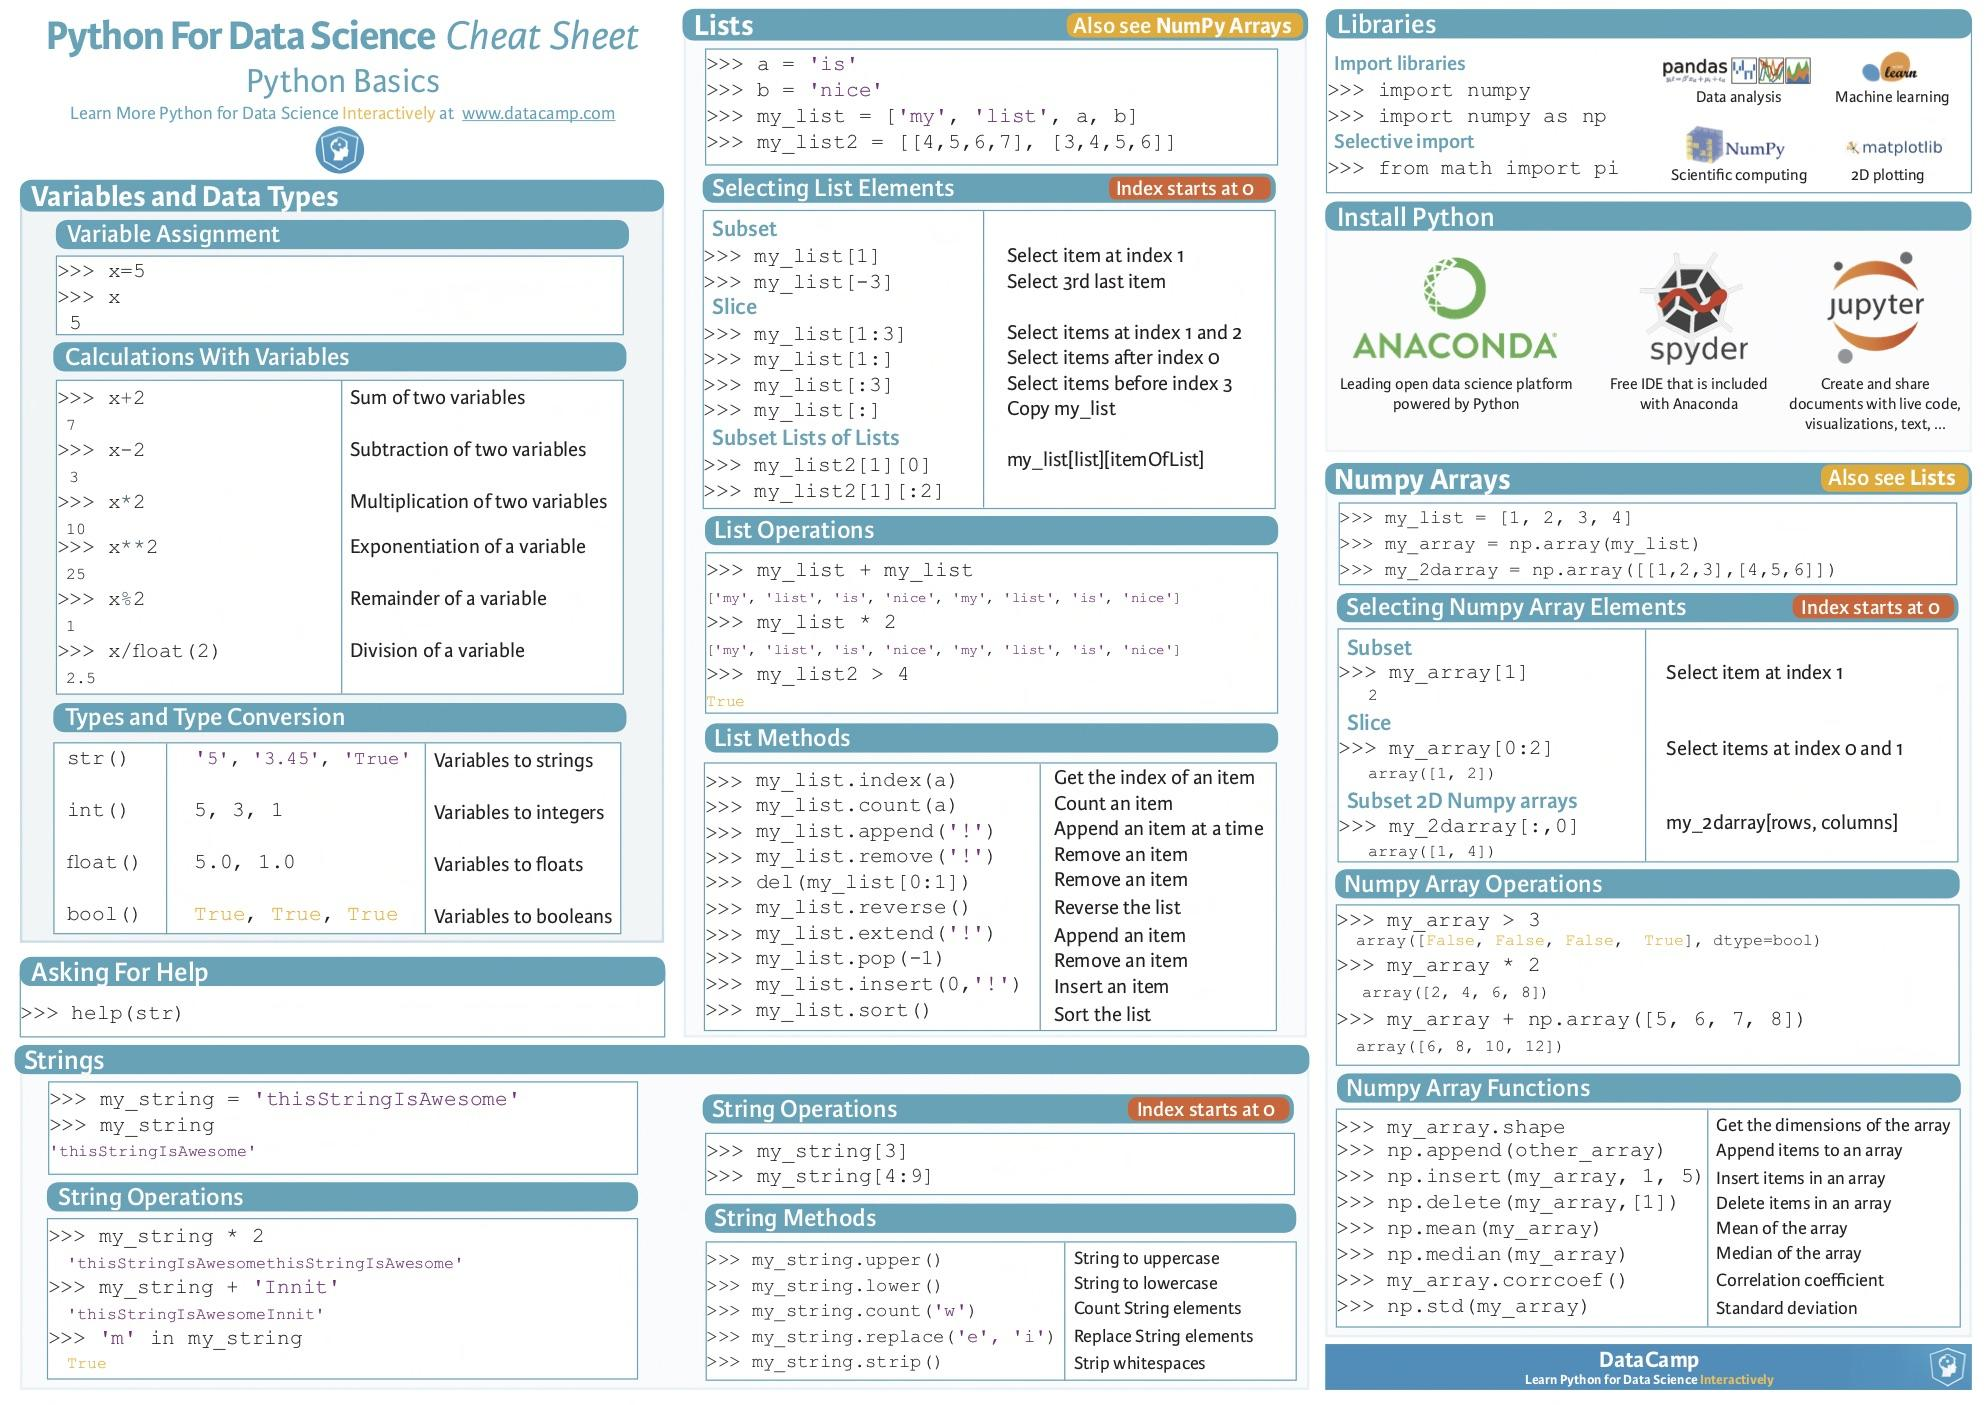 Neat Python Cheat Sheet For Data Science For Beginners